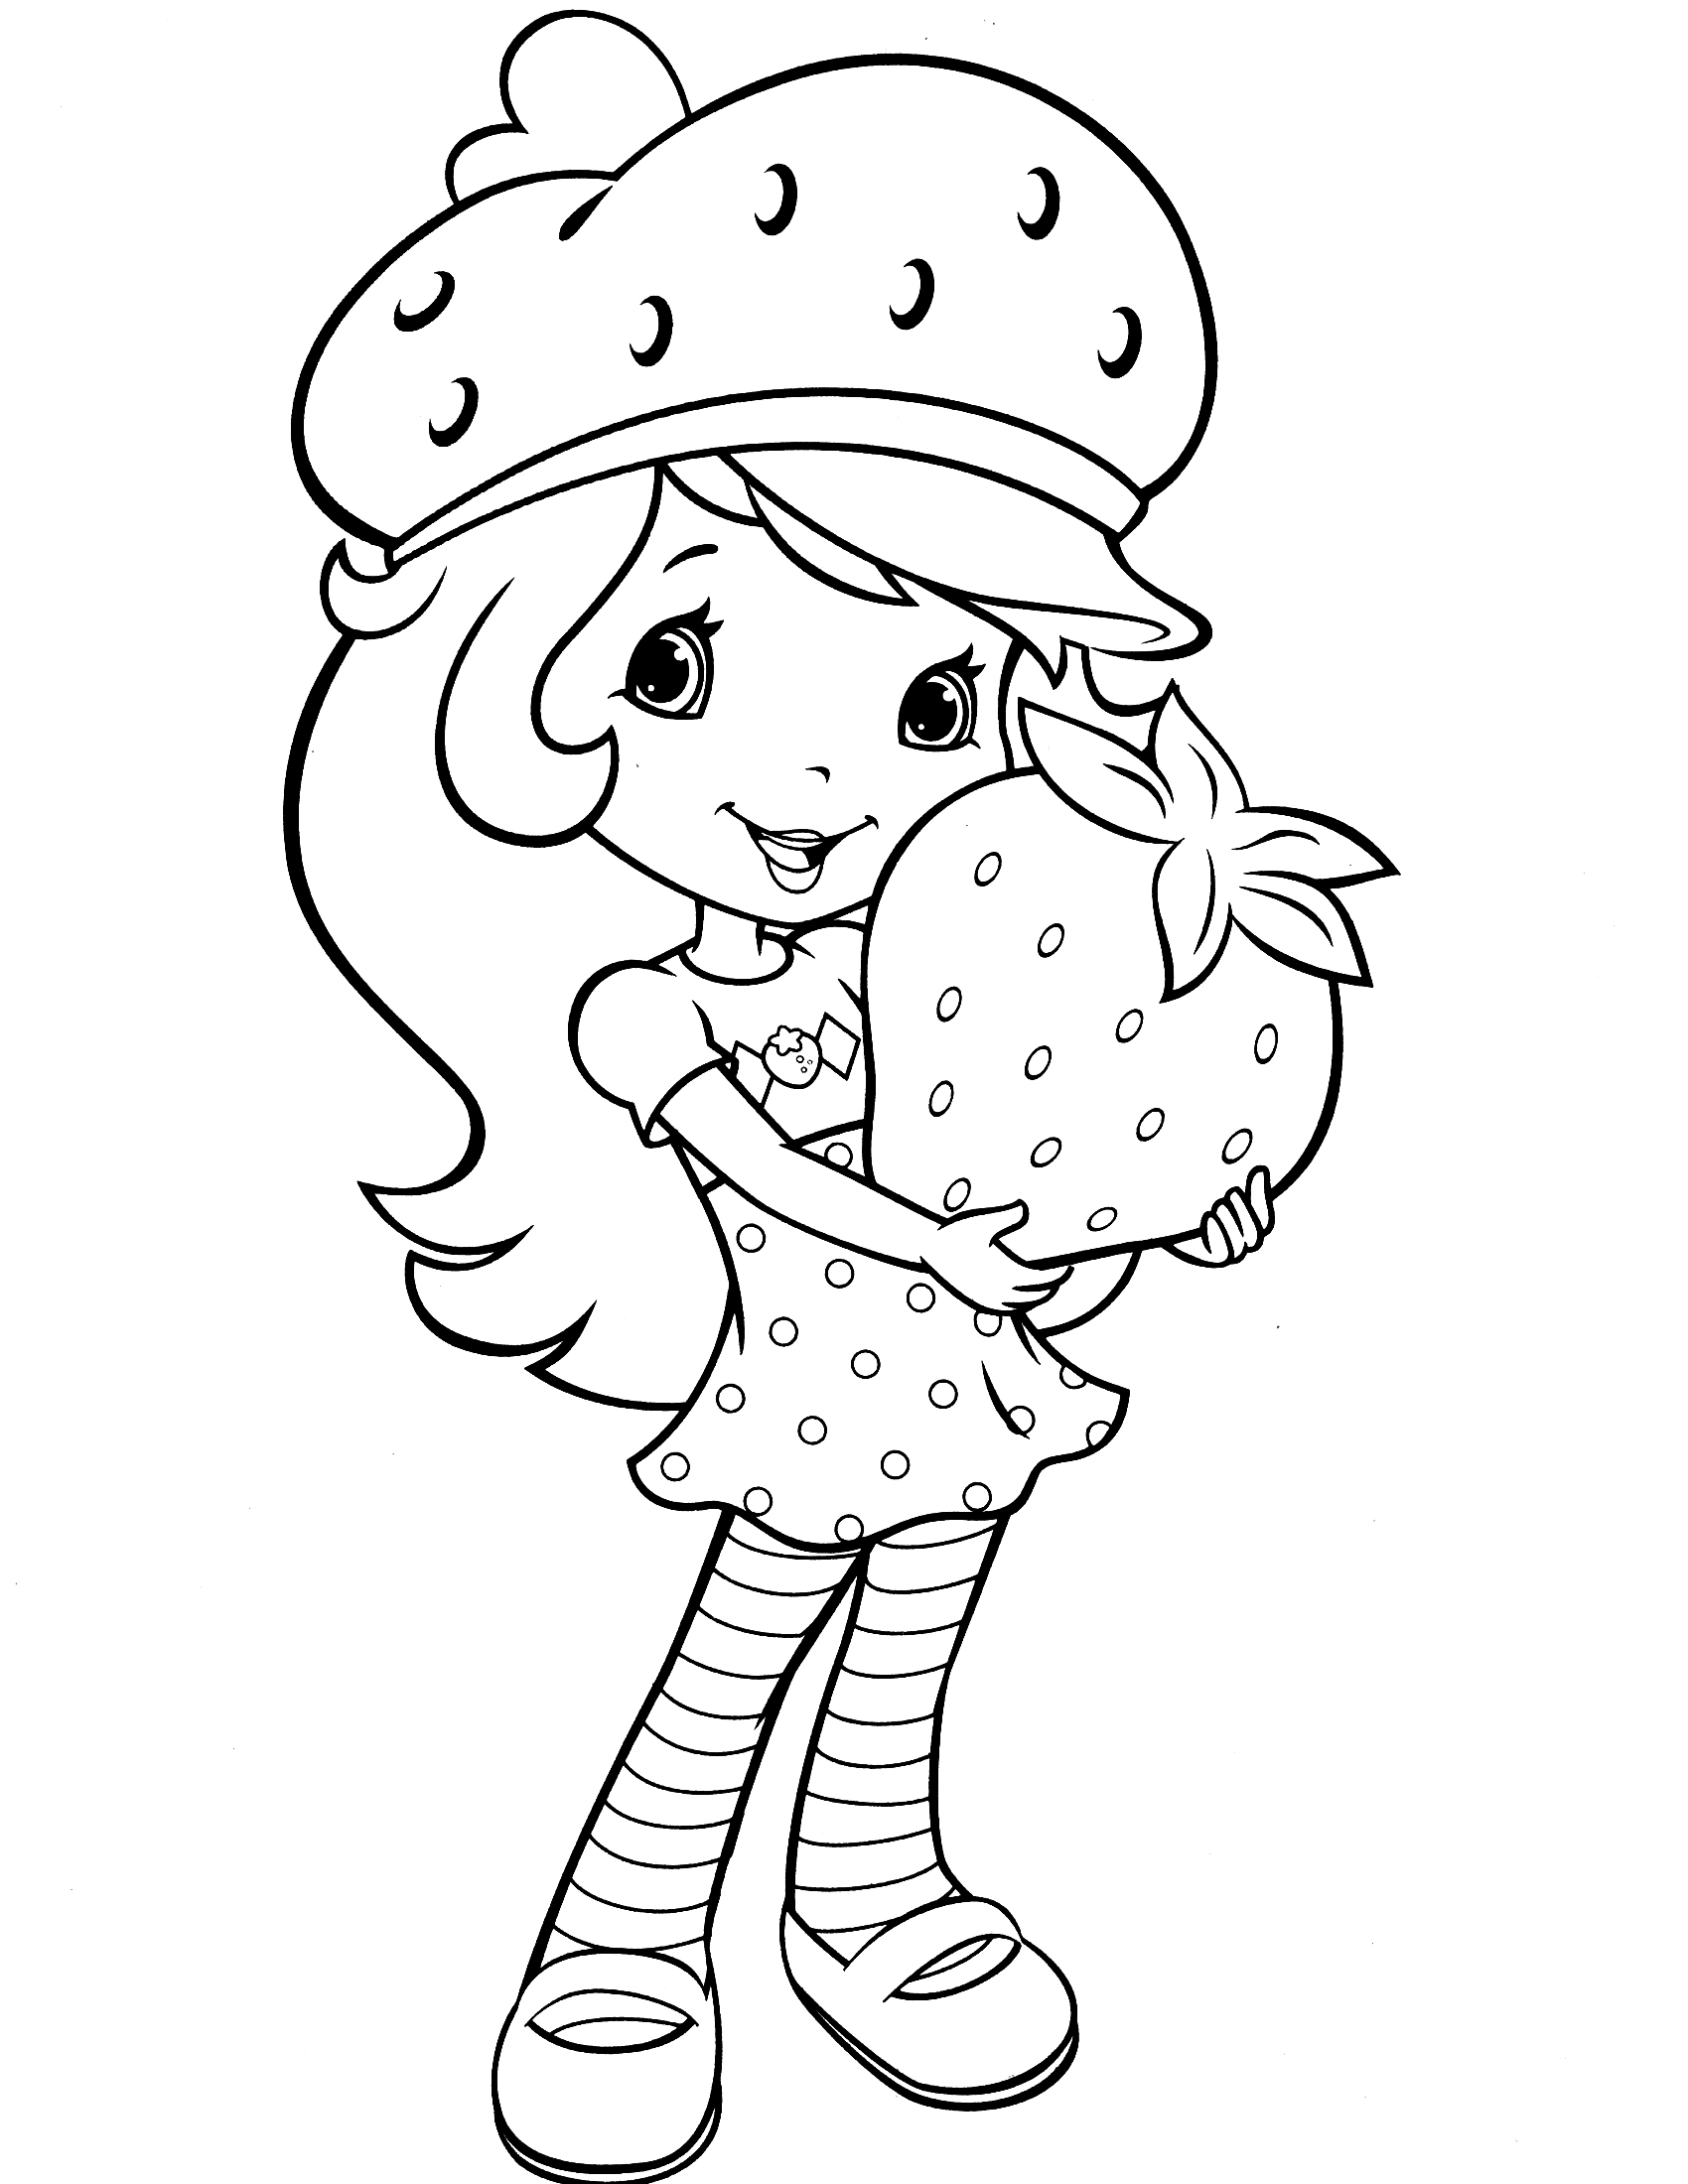 strawberry shortcake coloring pages for kids strawberry coloring pages best coloring pages for kids pages coloring shortcake kids for strawberry